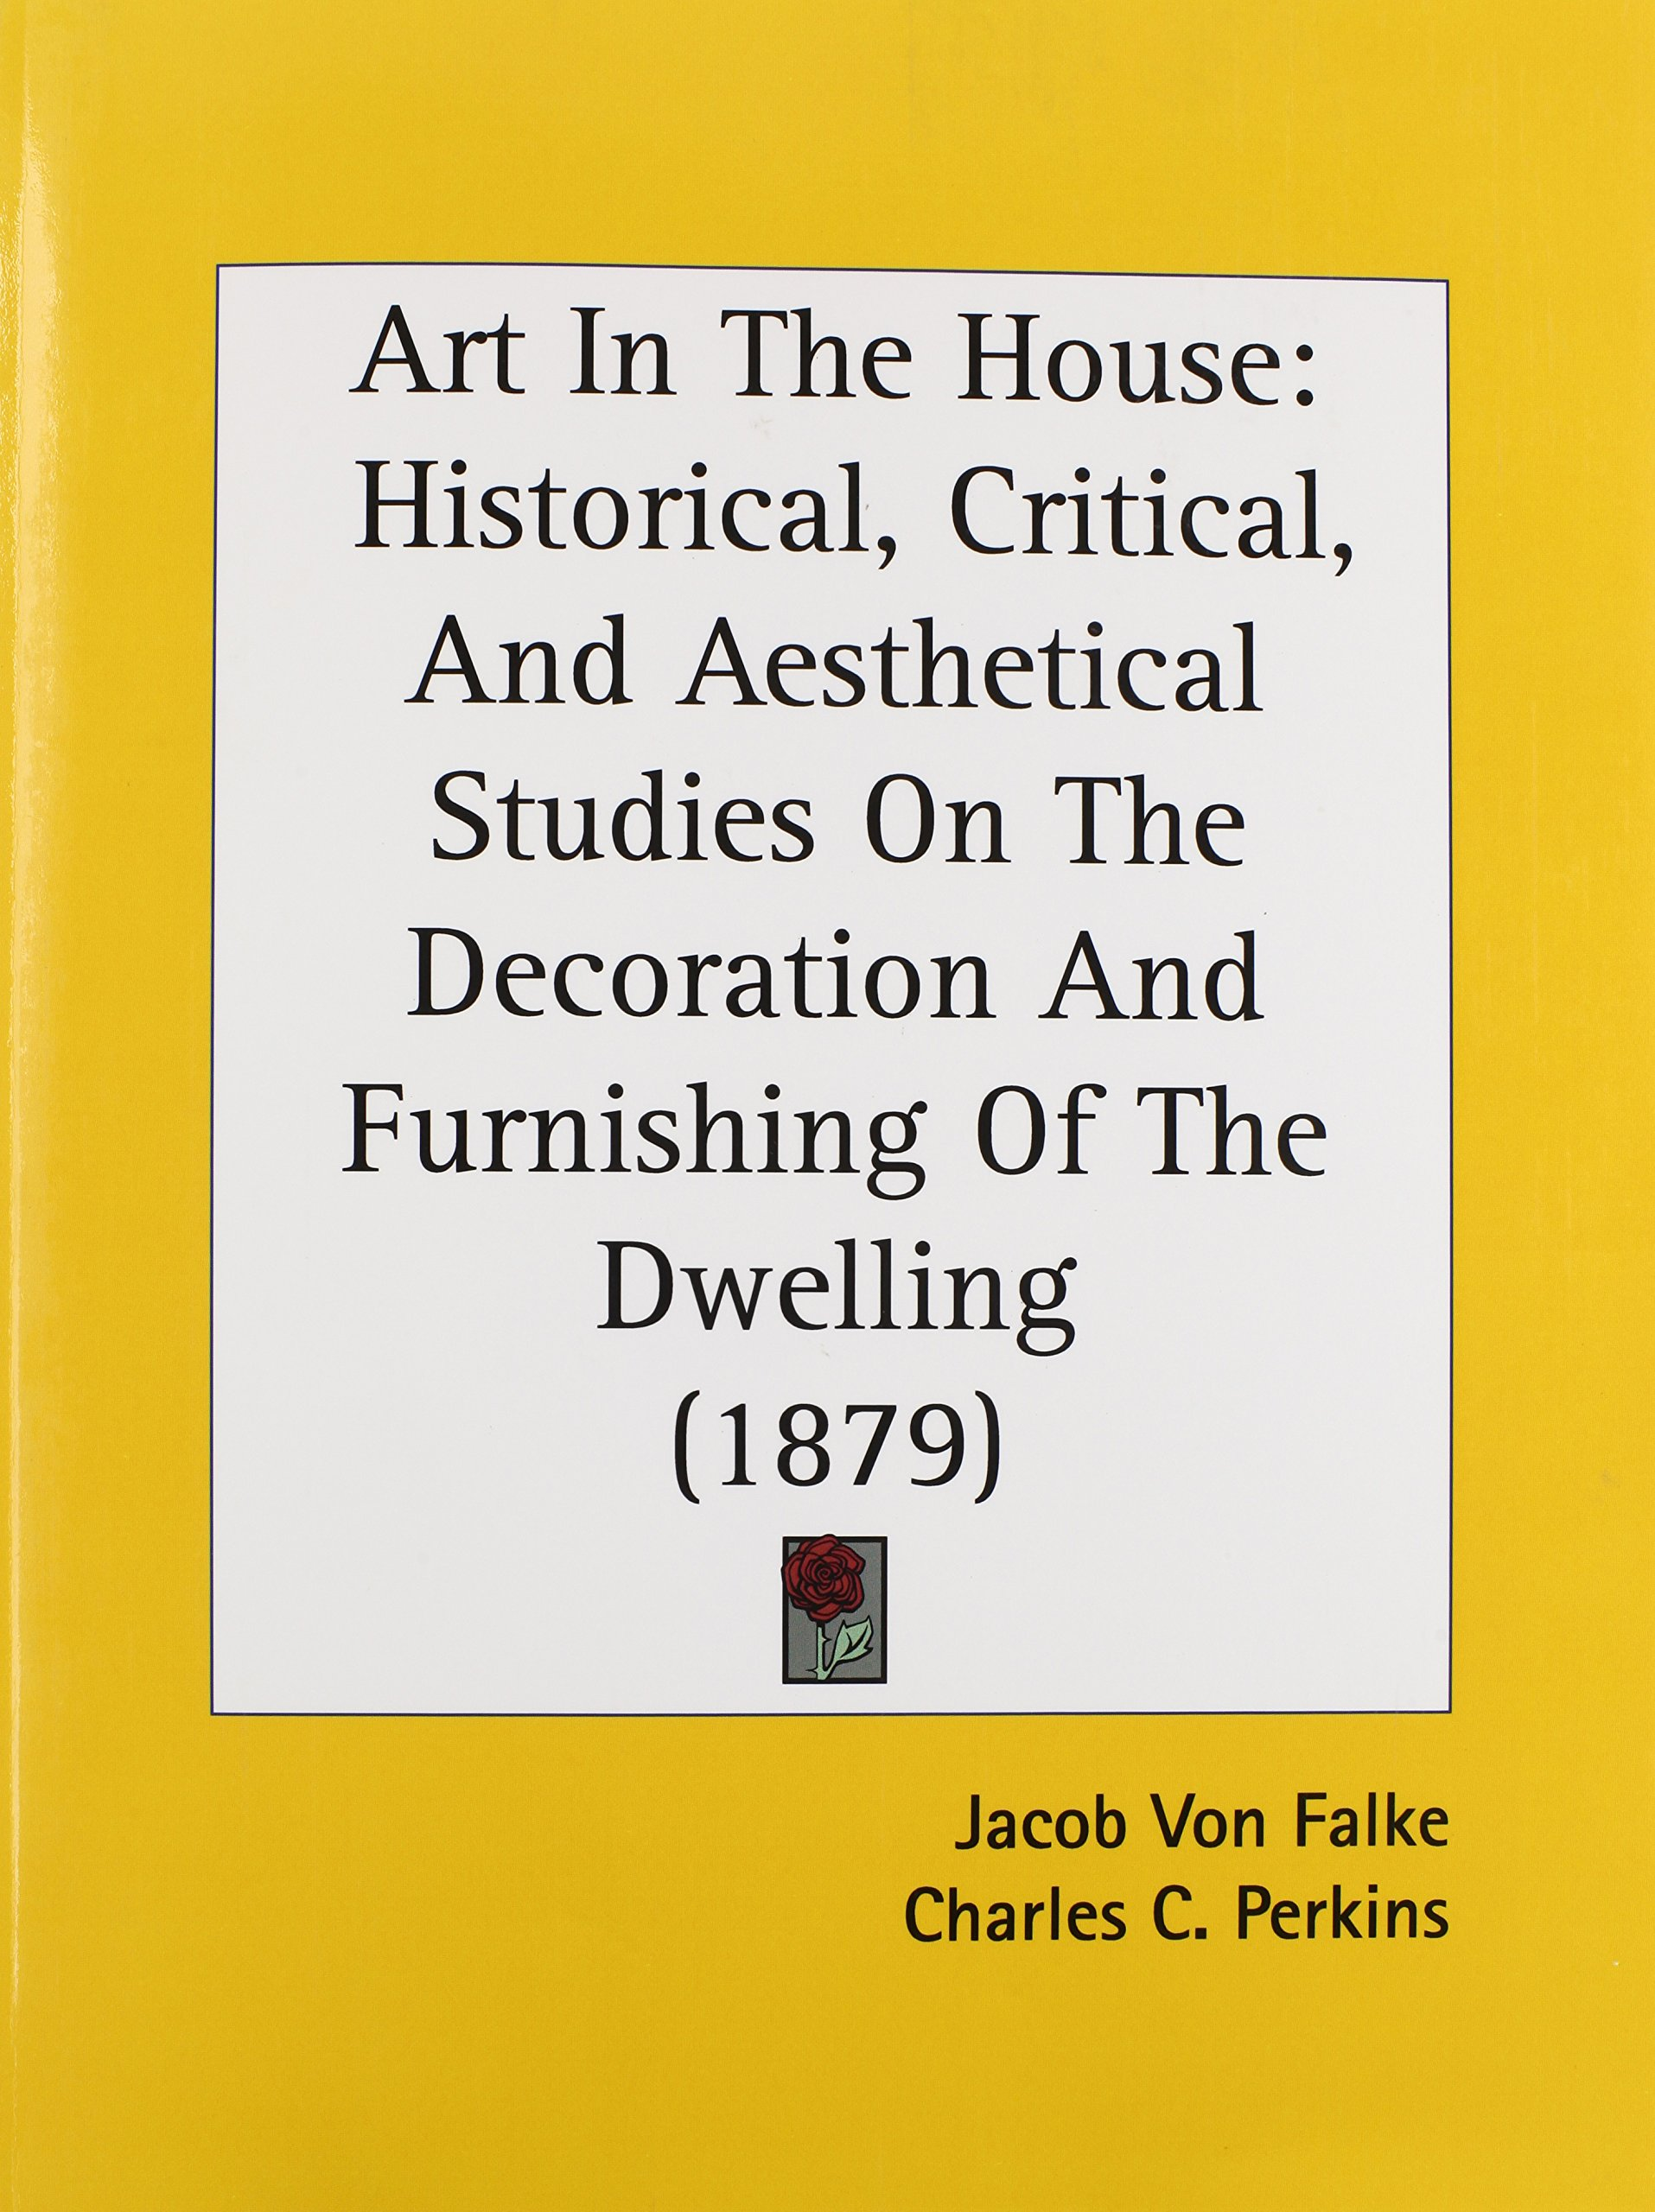 Download Art In The House: Historical, Critical, And Aesthetical Studies On The Decoration And Furnishing Of The Dwelling (1879) pdf epub